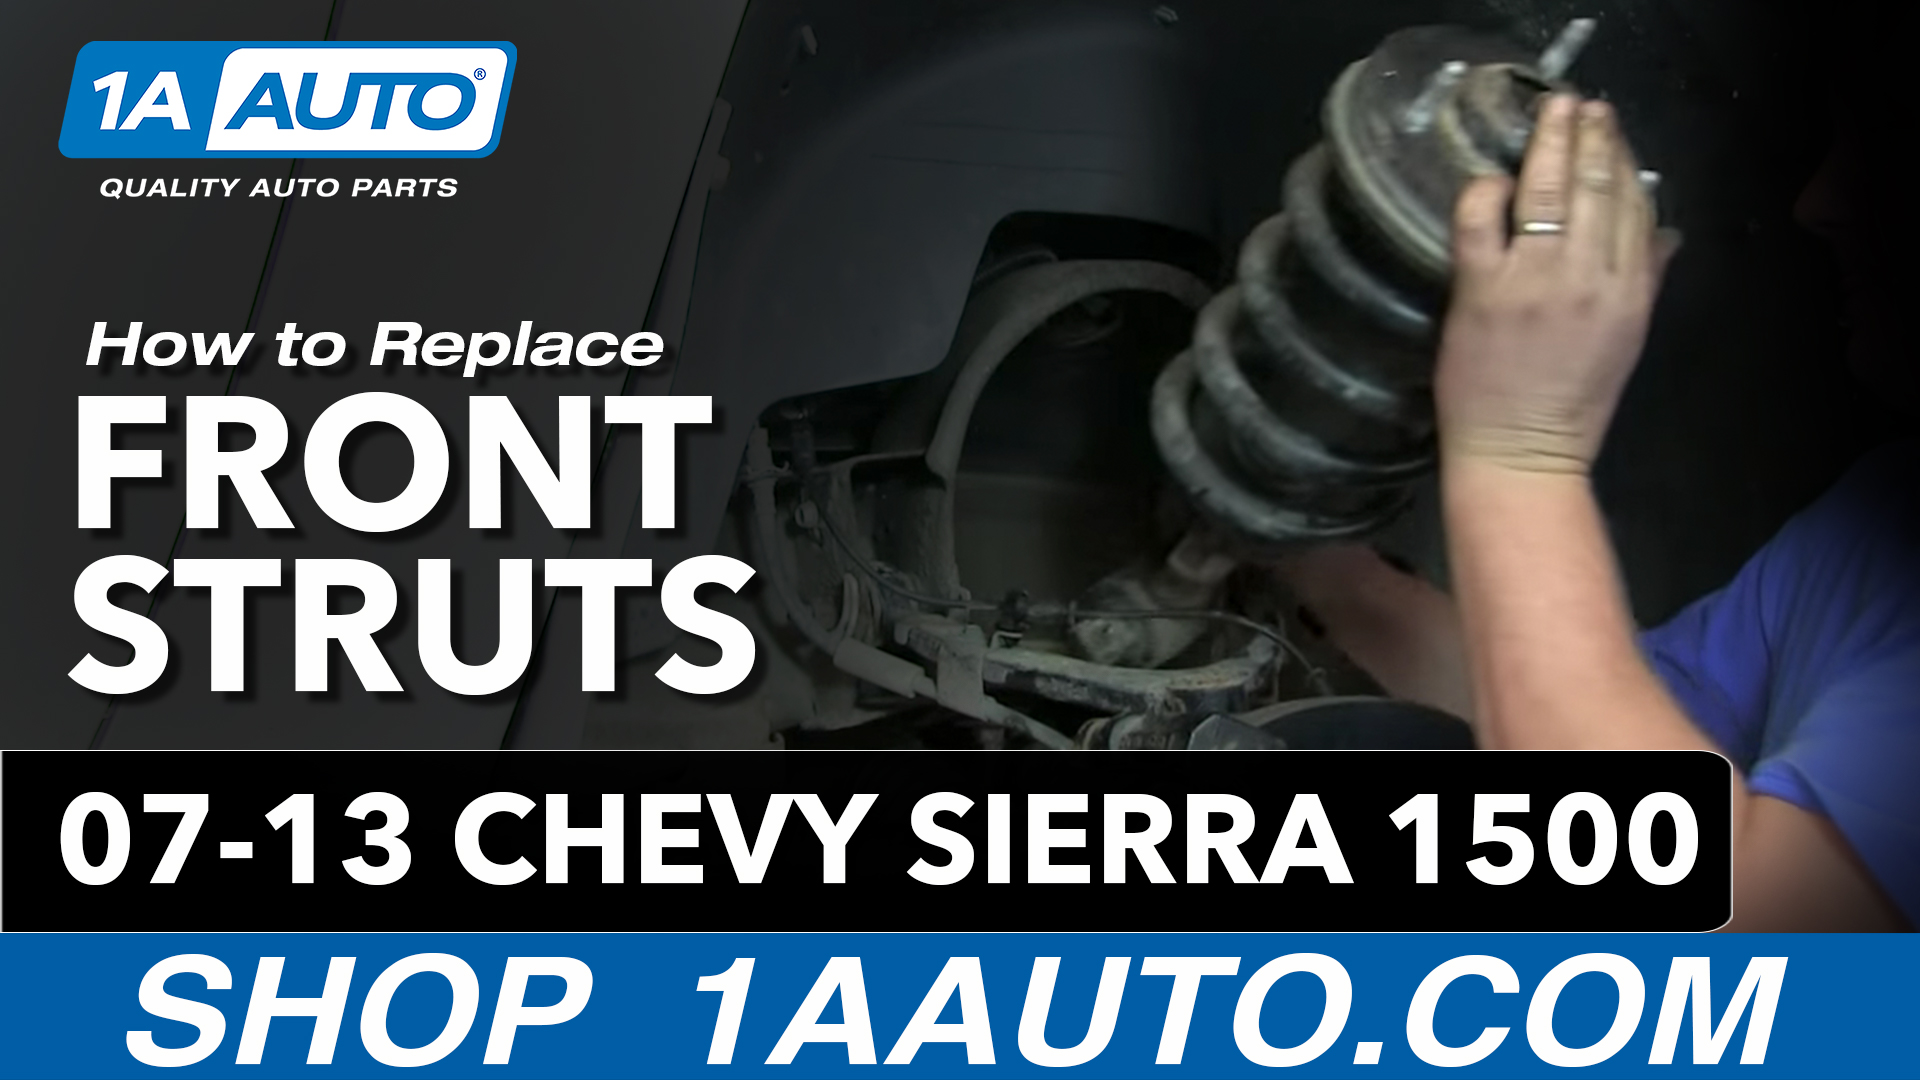 How To Replace Front Struts 07-13 Chevy Silverado